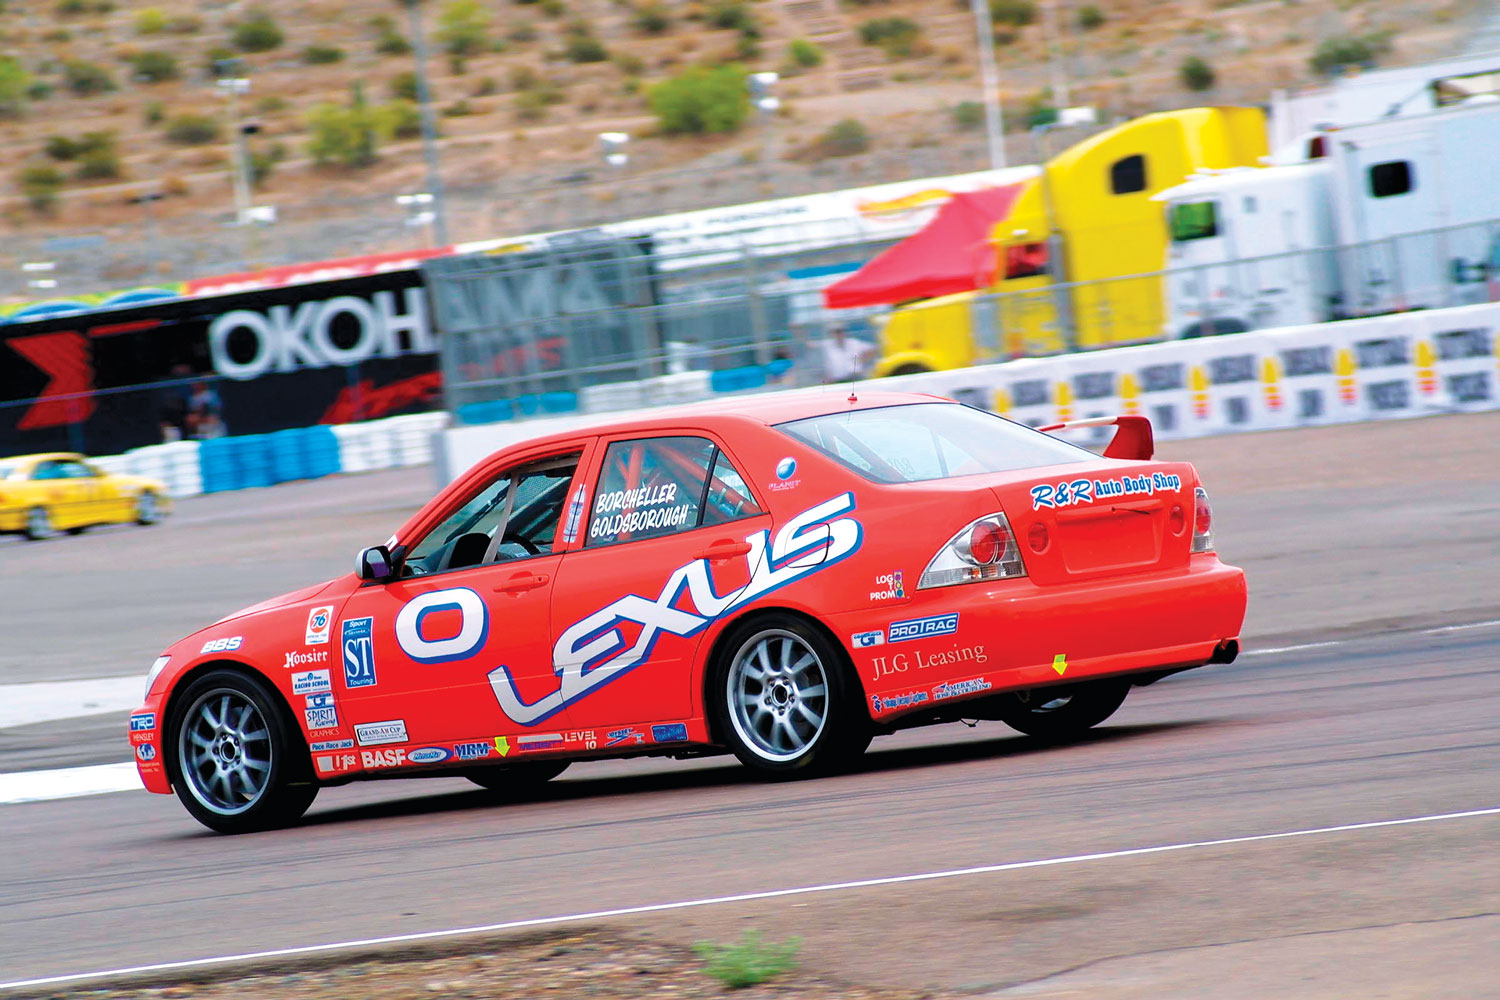 TRD-2002 Lexus Racecar Goldsborough Lexus IS300